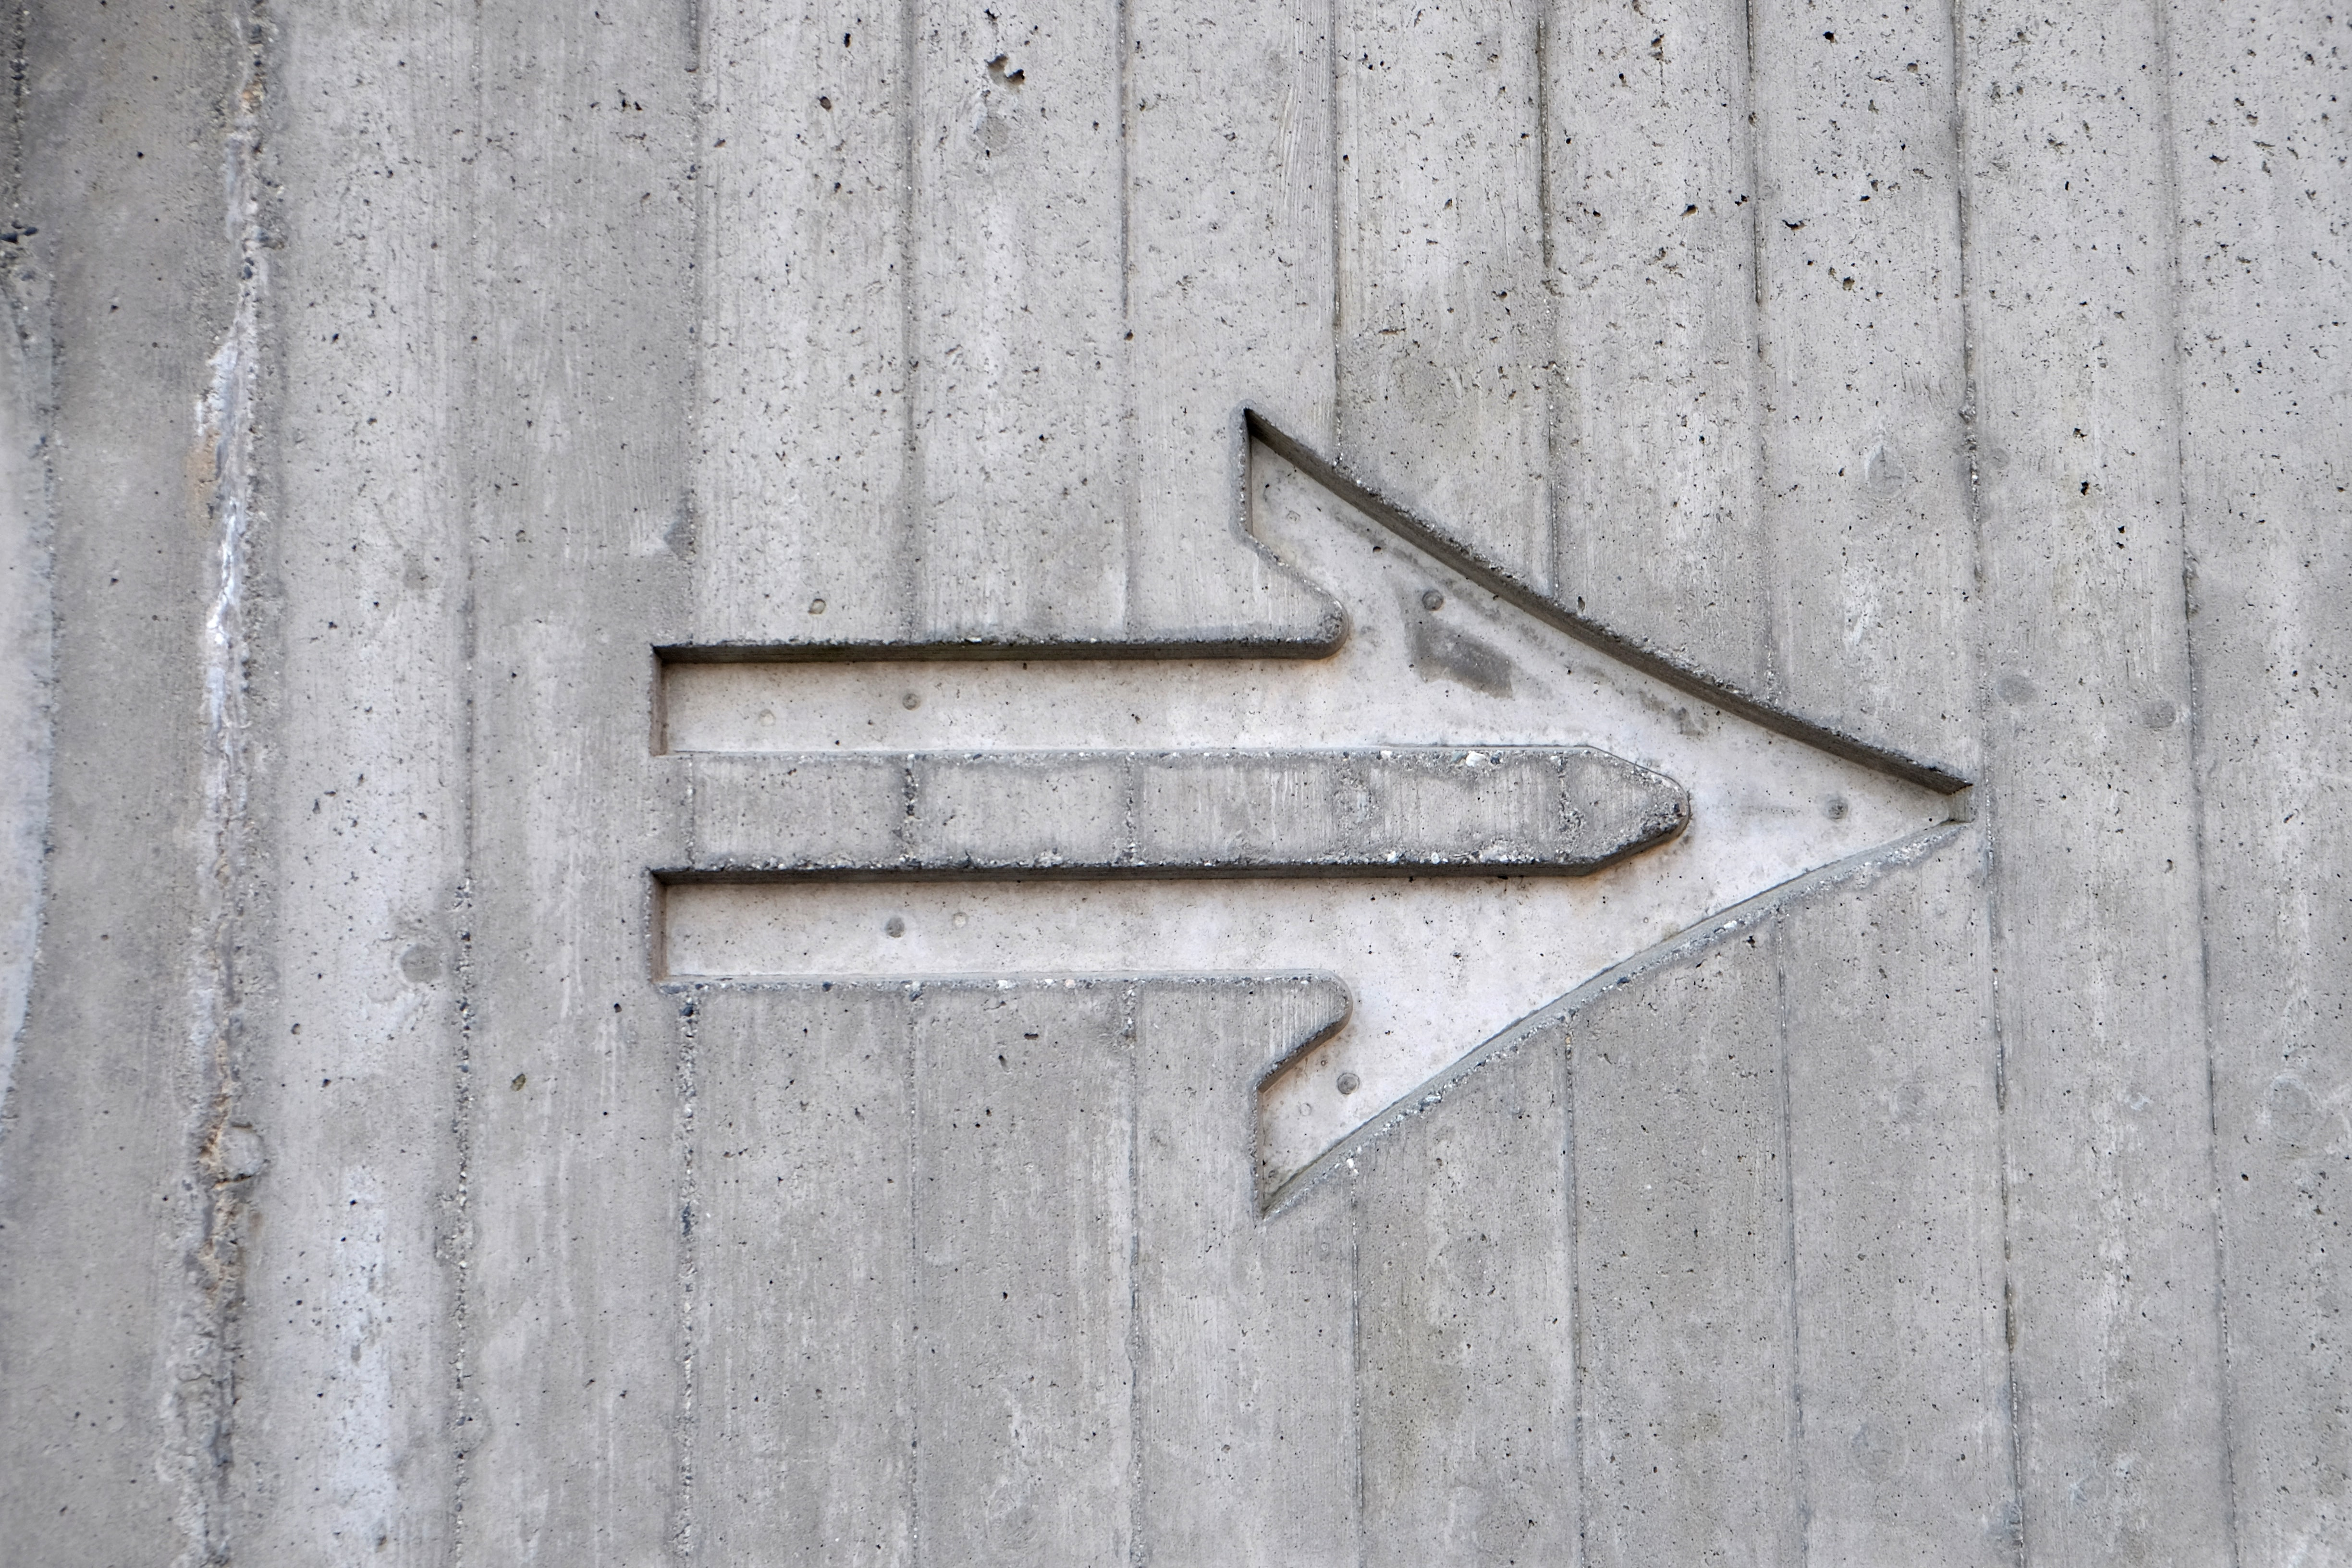 An arrow etched in a concrete wall